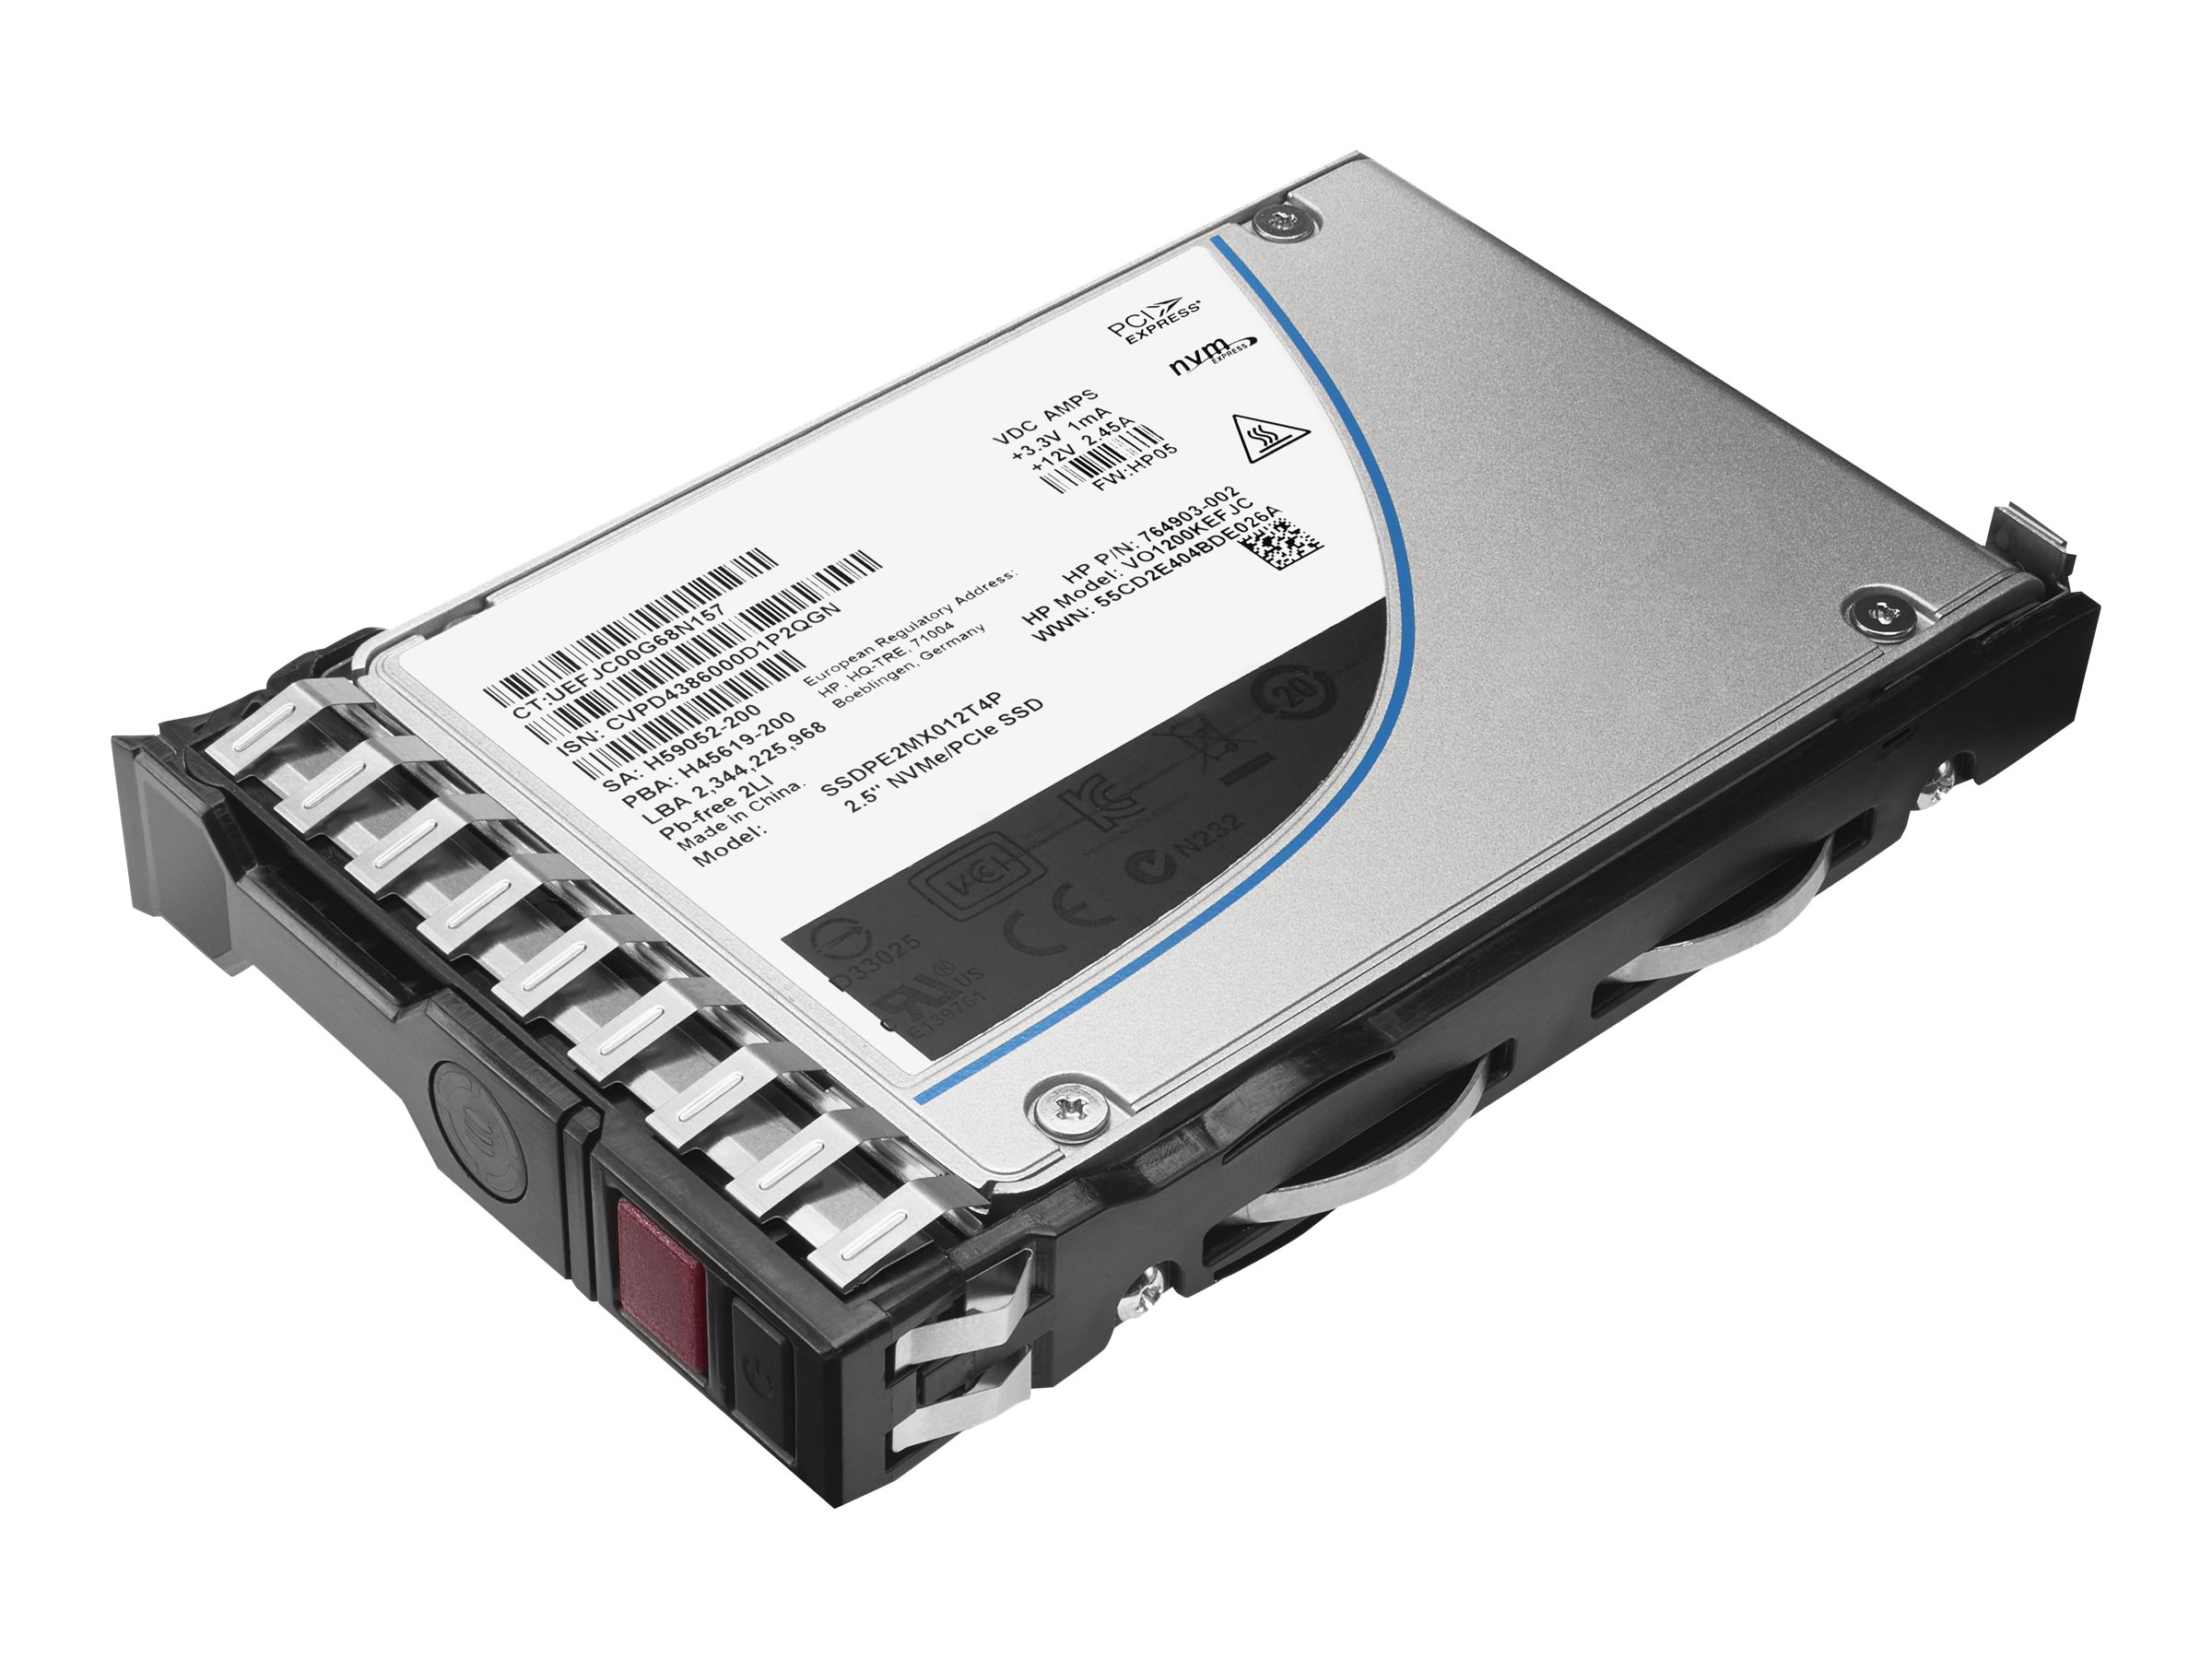 HPE 200GB SAS 12Gb s Write Intensive SFF 2.5 Hot Plug Solid State Drive for Gen8 Servers & Beyond, 802578-B21